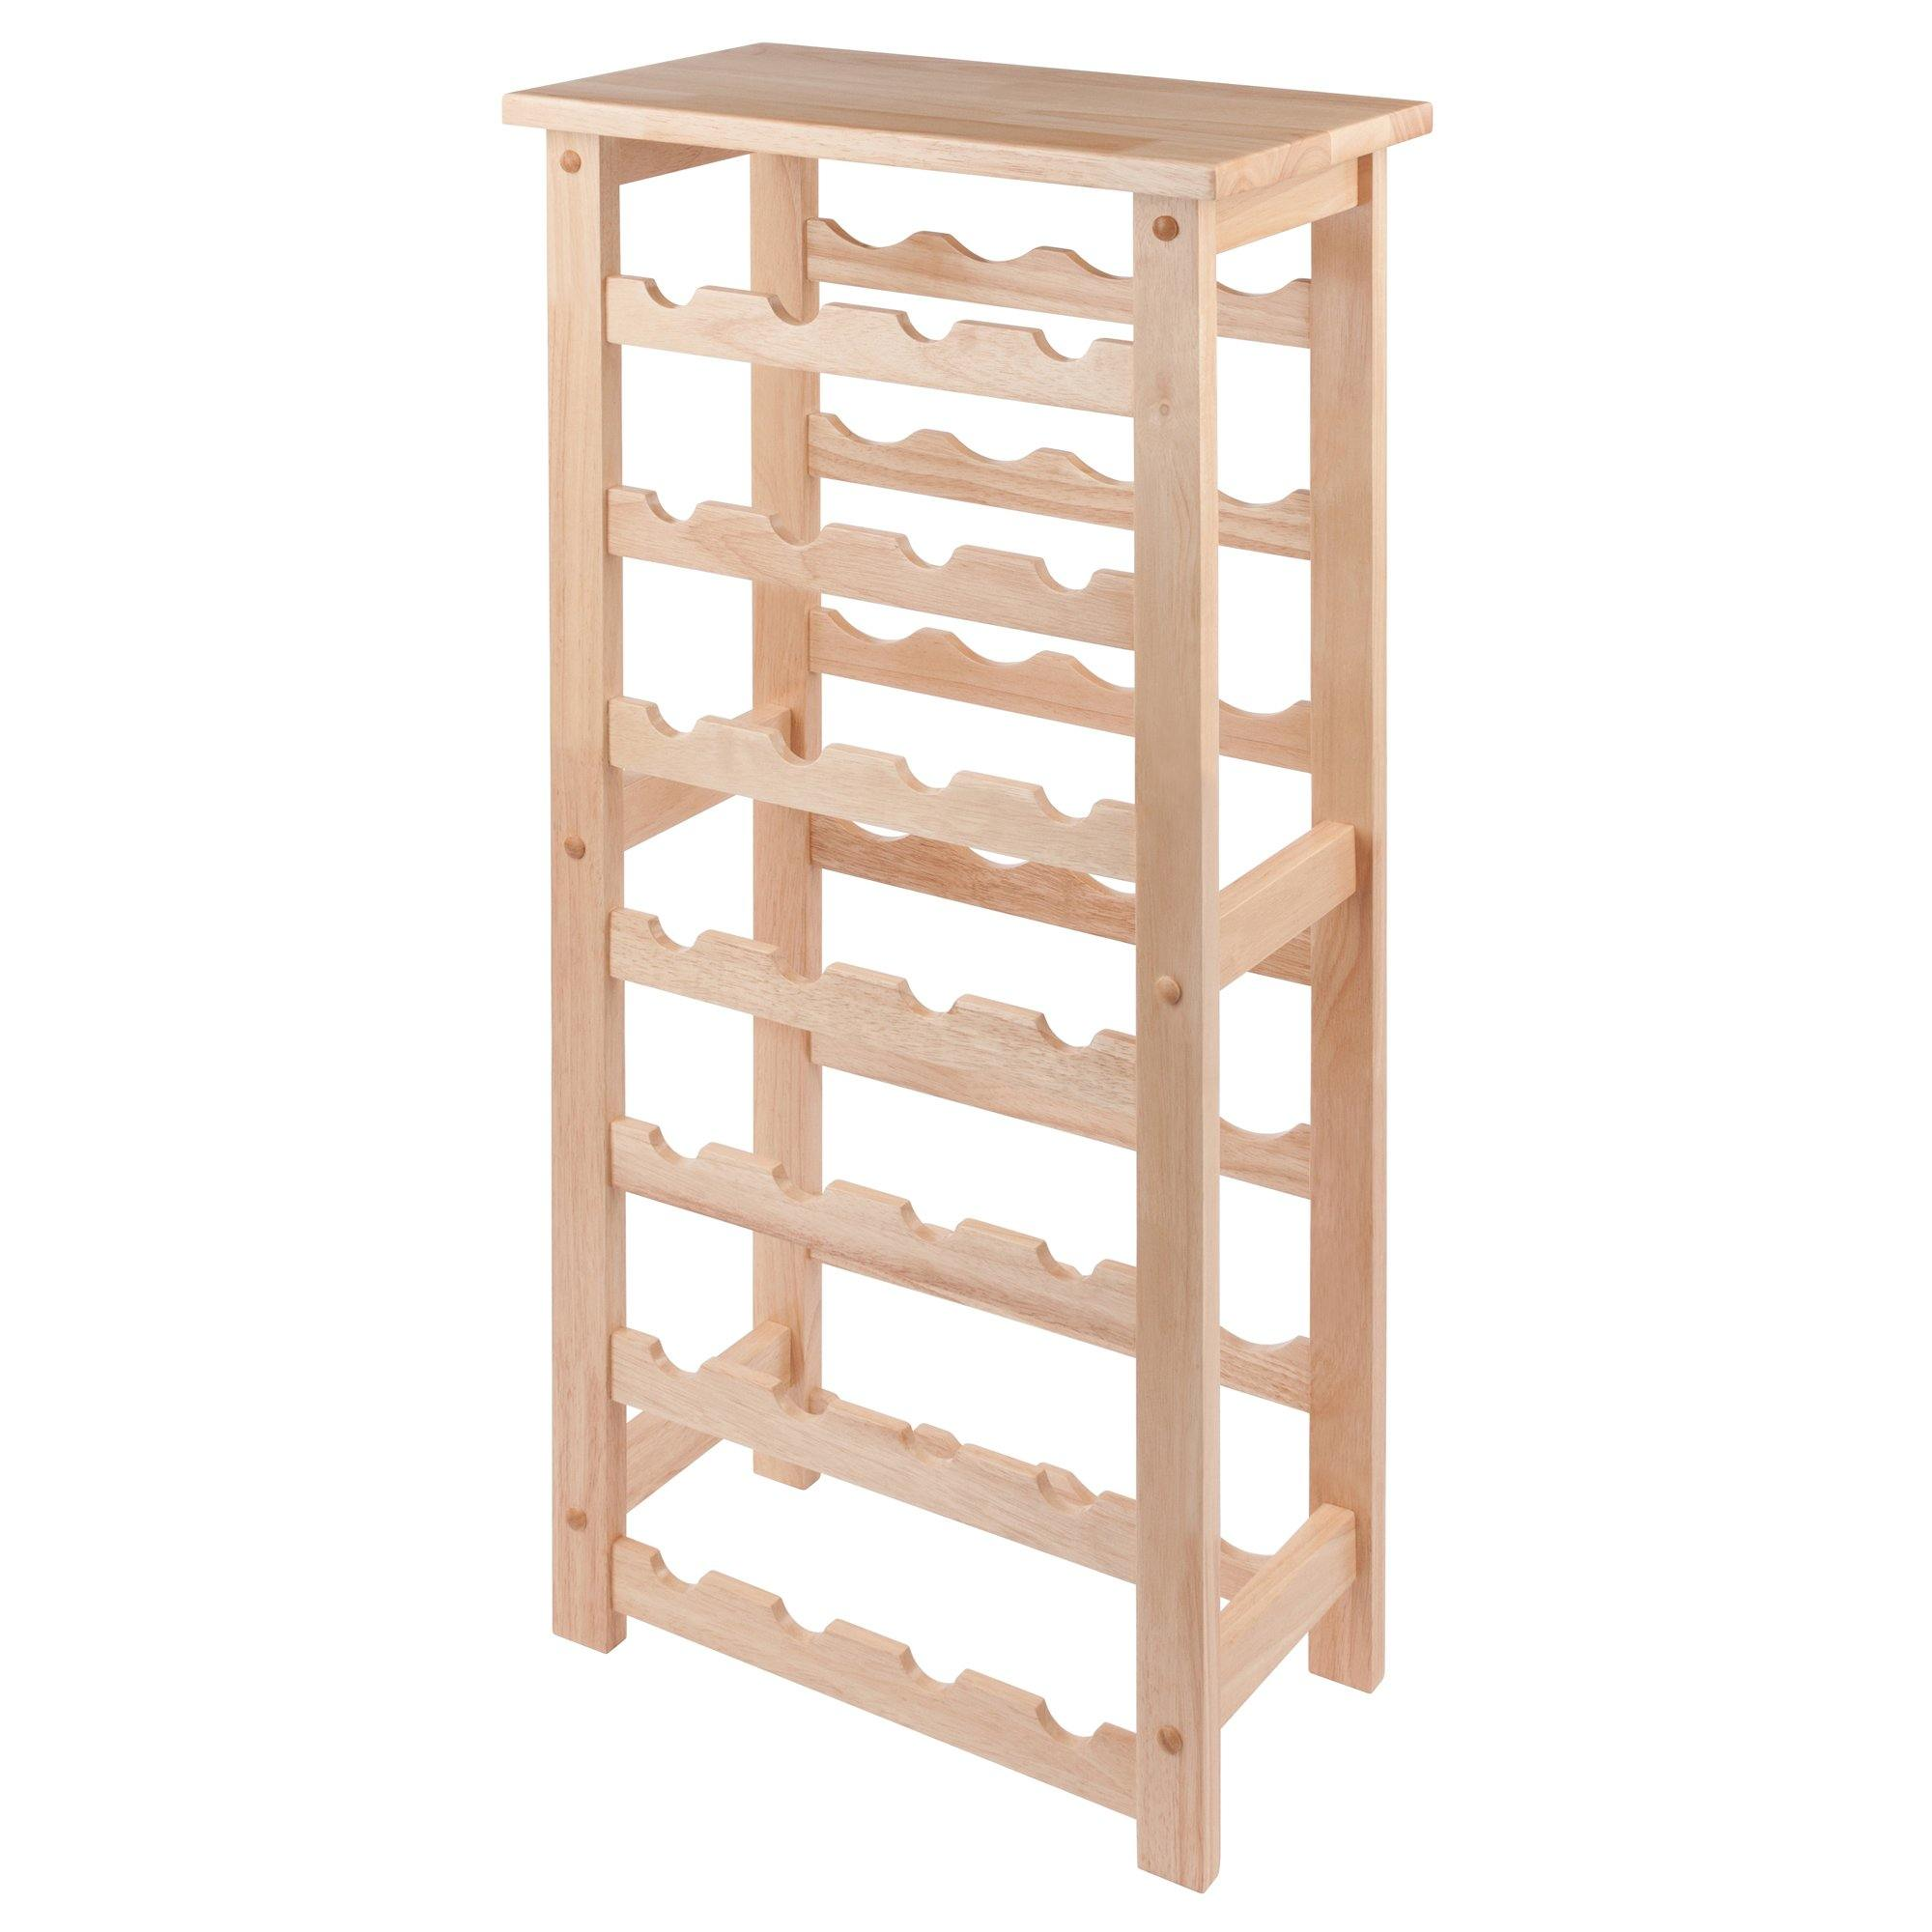 Napa Wine Rack - My USA Furniture